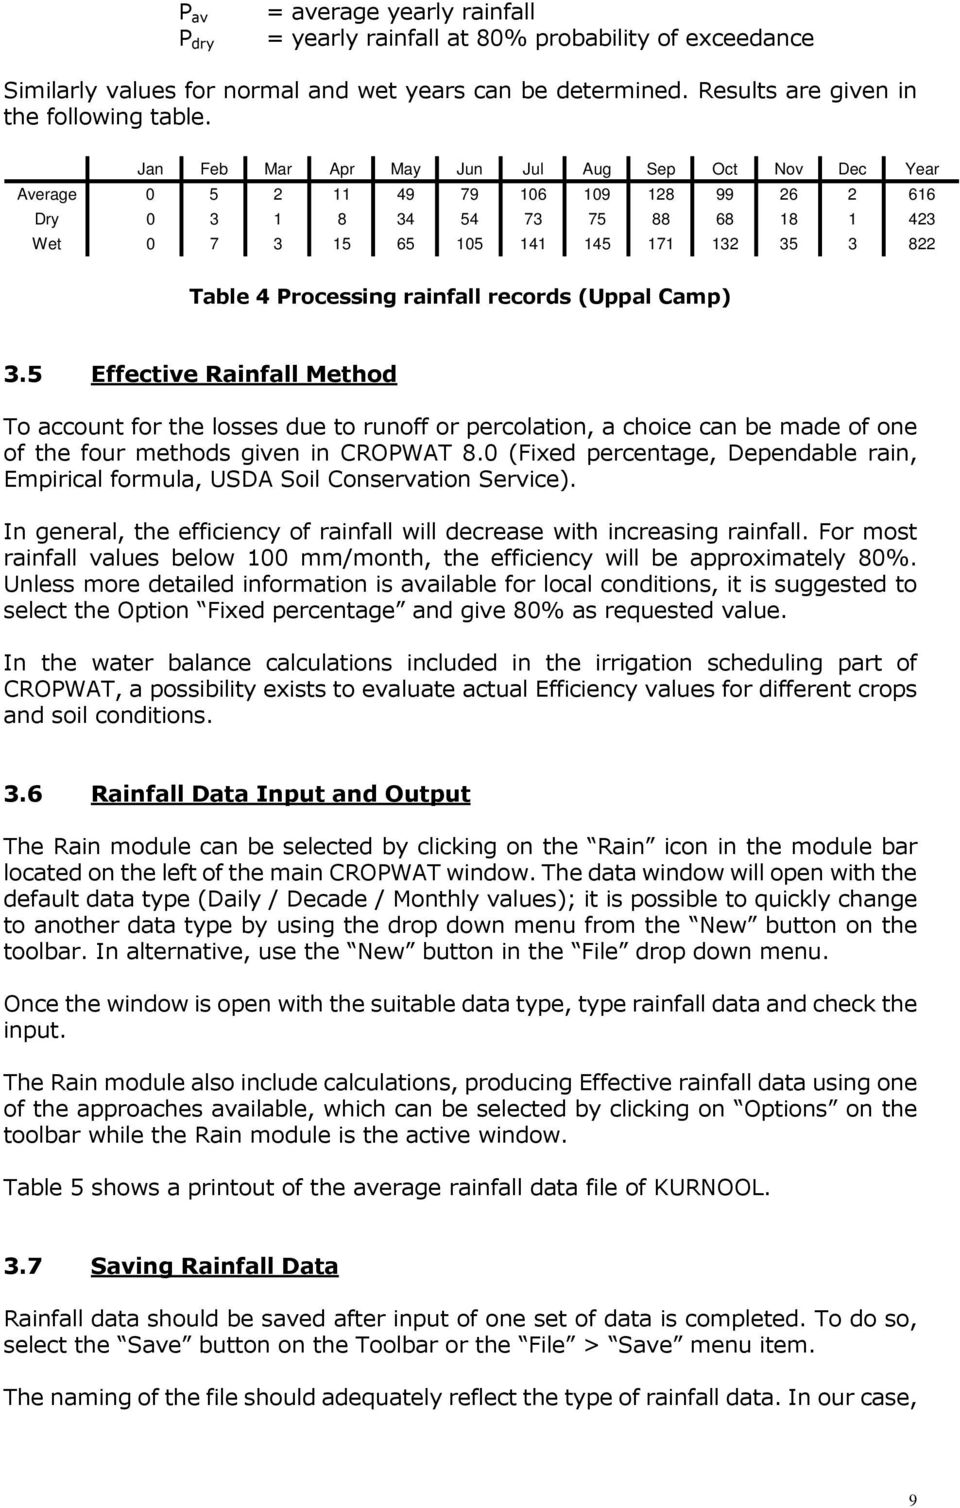 Processing rainfall records (Uppal Camp) 3.5 Effective Rainfall Method To account for the losses due to runoff or percolation, a choice can be made of one of the four methods given in CROPWAT 8.